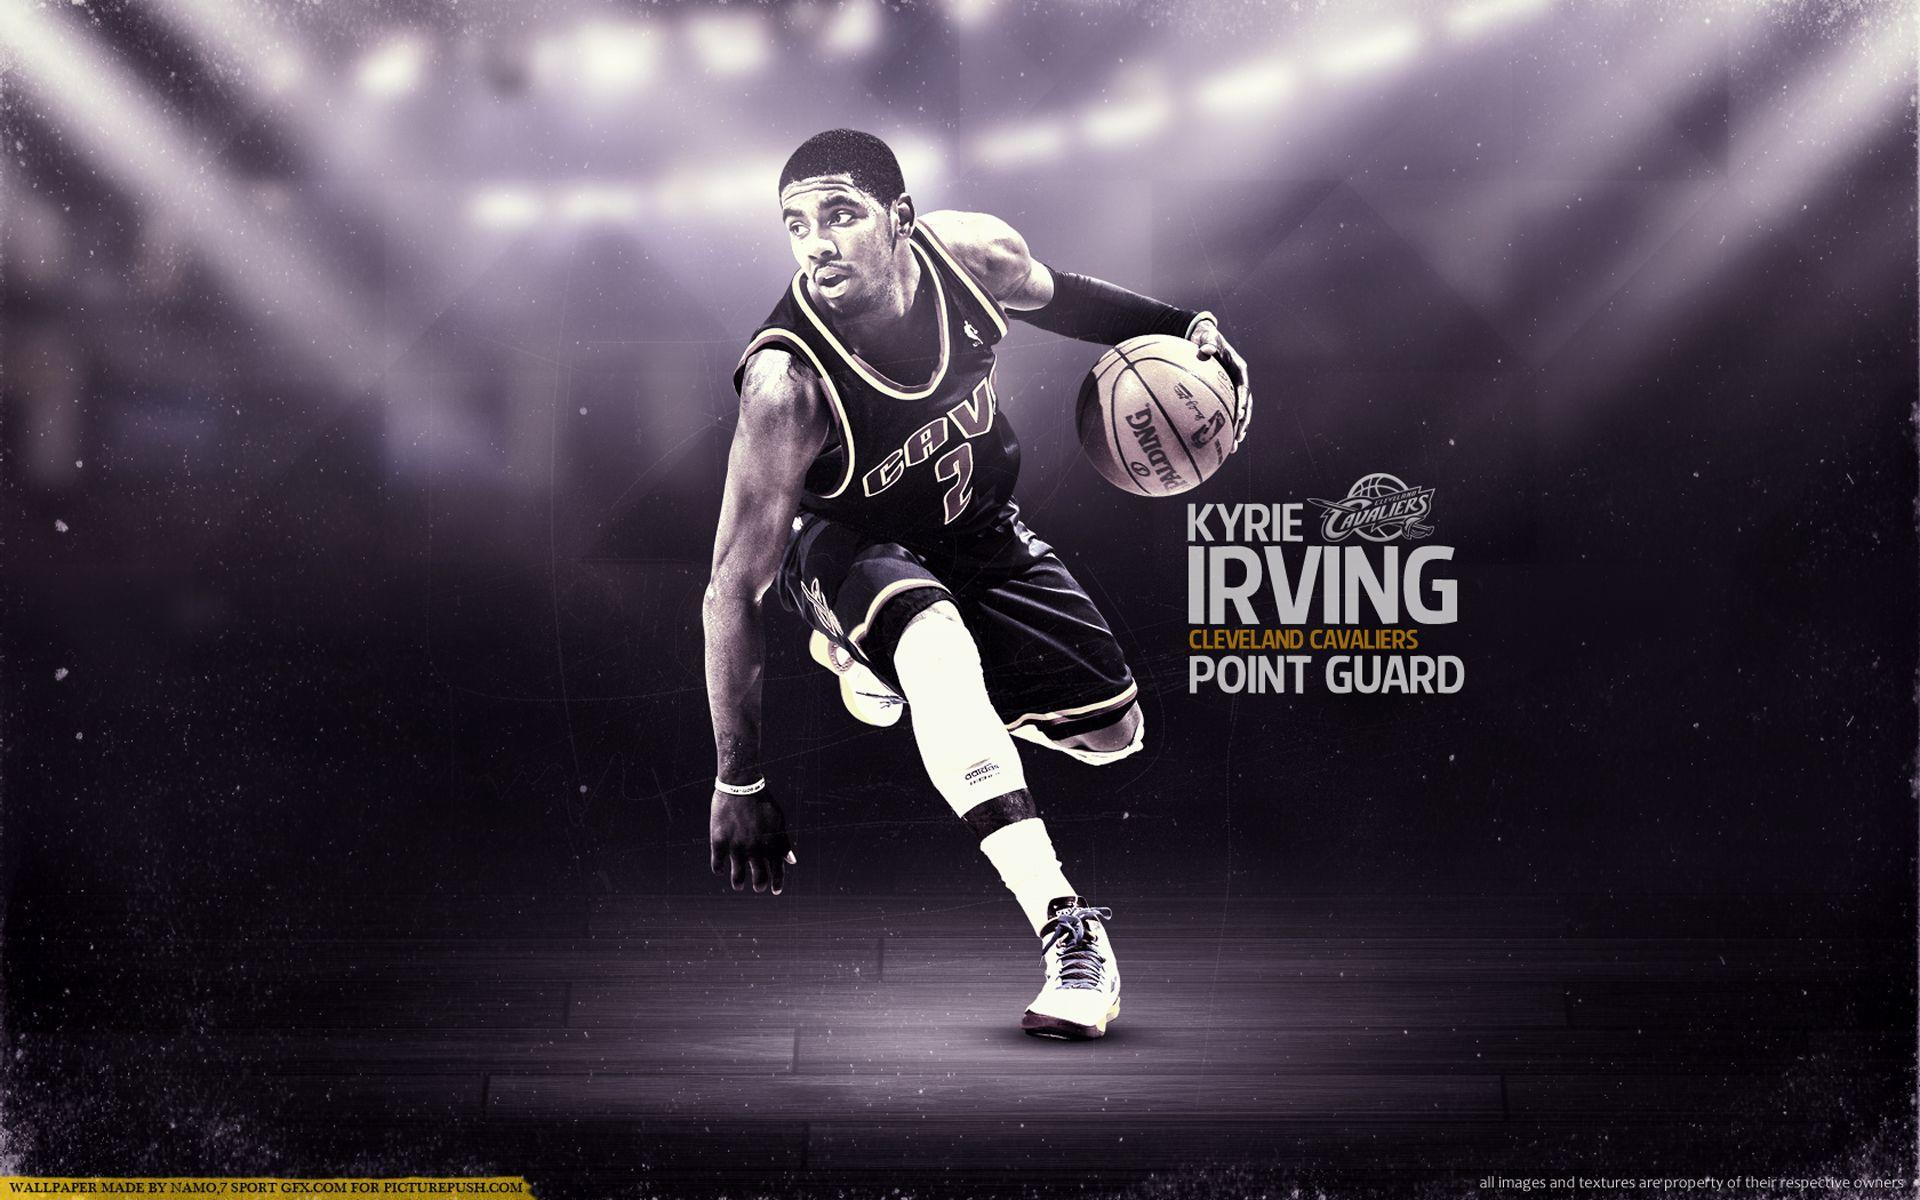 Kyrie Irving Wallpapers - Wallpaper Cave Kyrie Irving Wallpaper Download